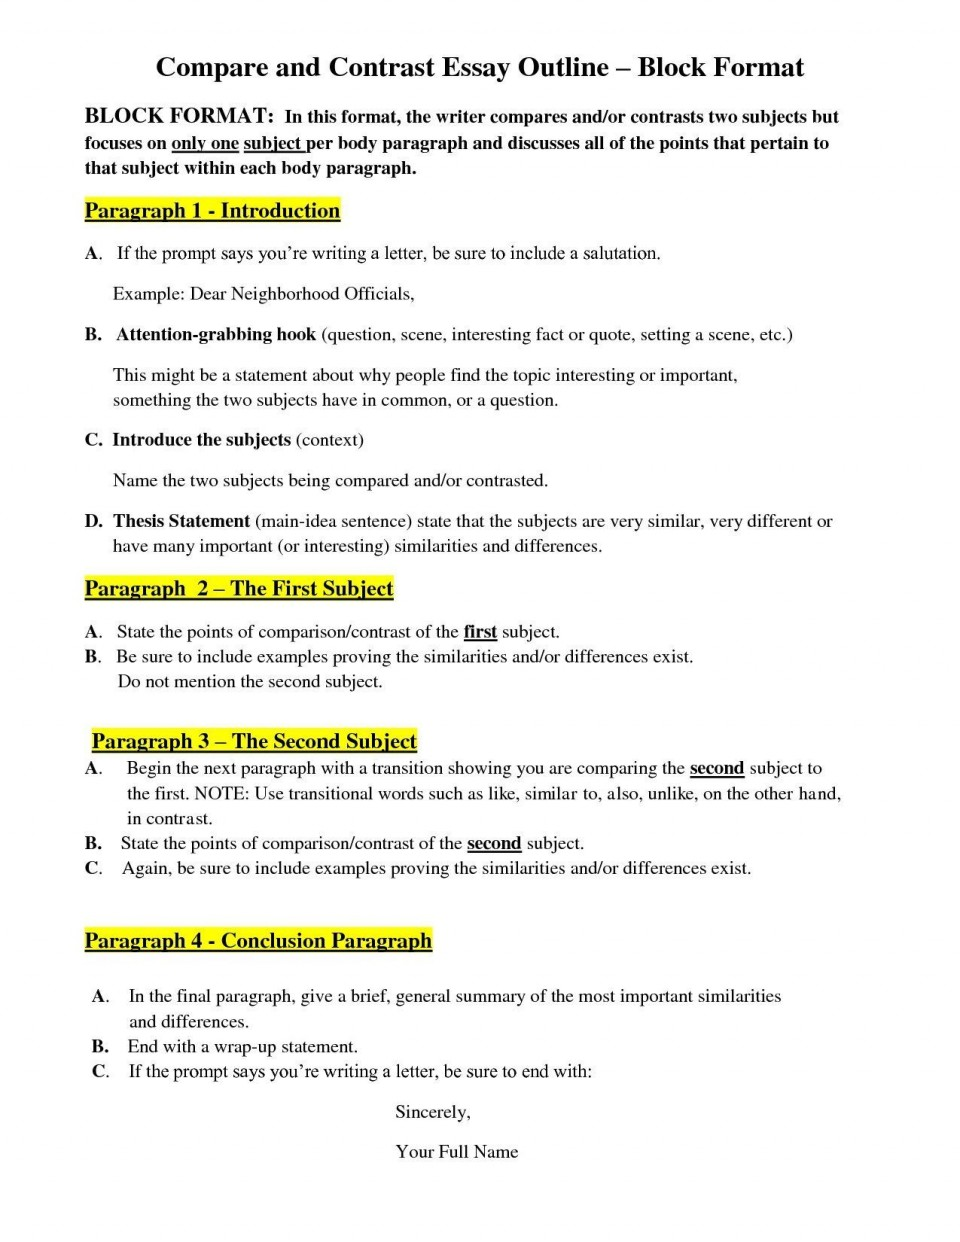 007 Compare And Contrast Essay Frightening Outline Block Method Ideas High School Template For Middle 960